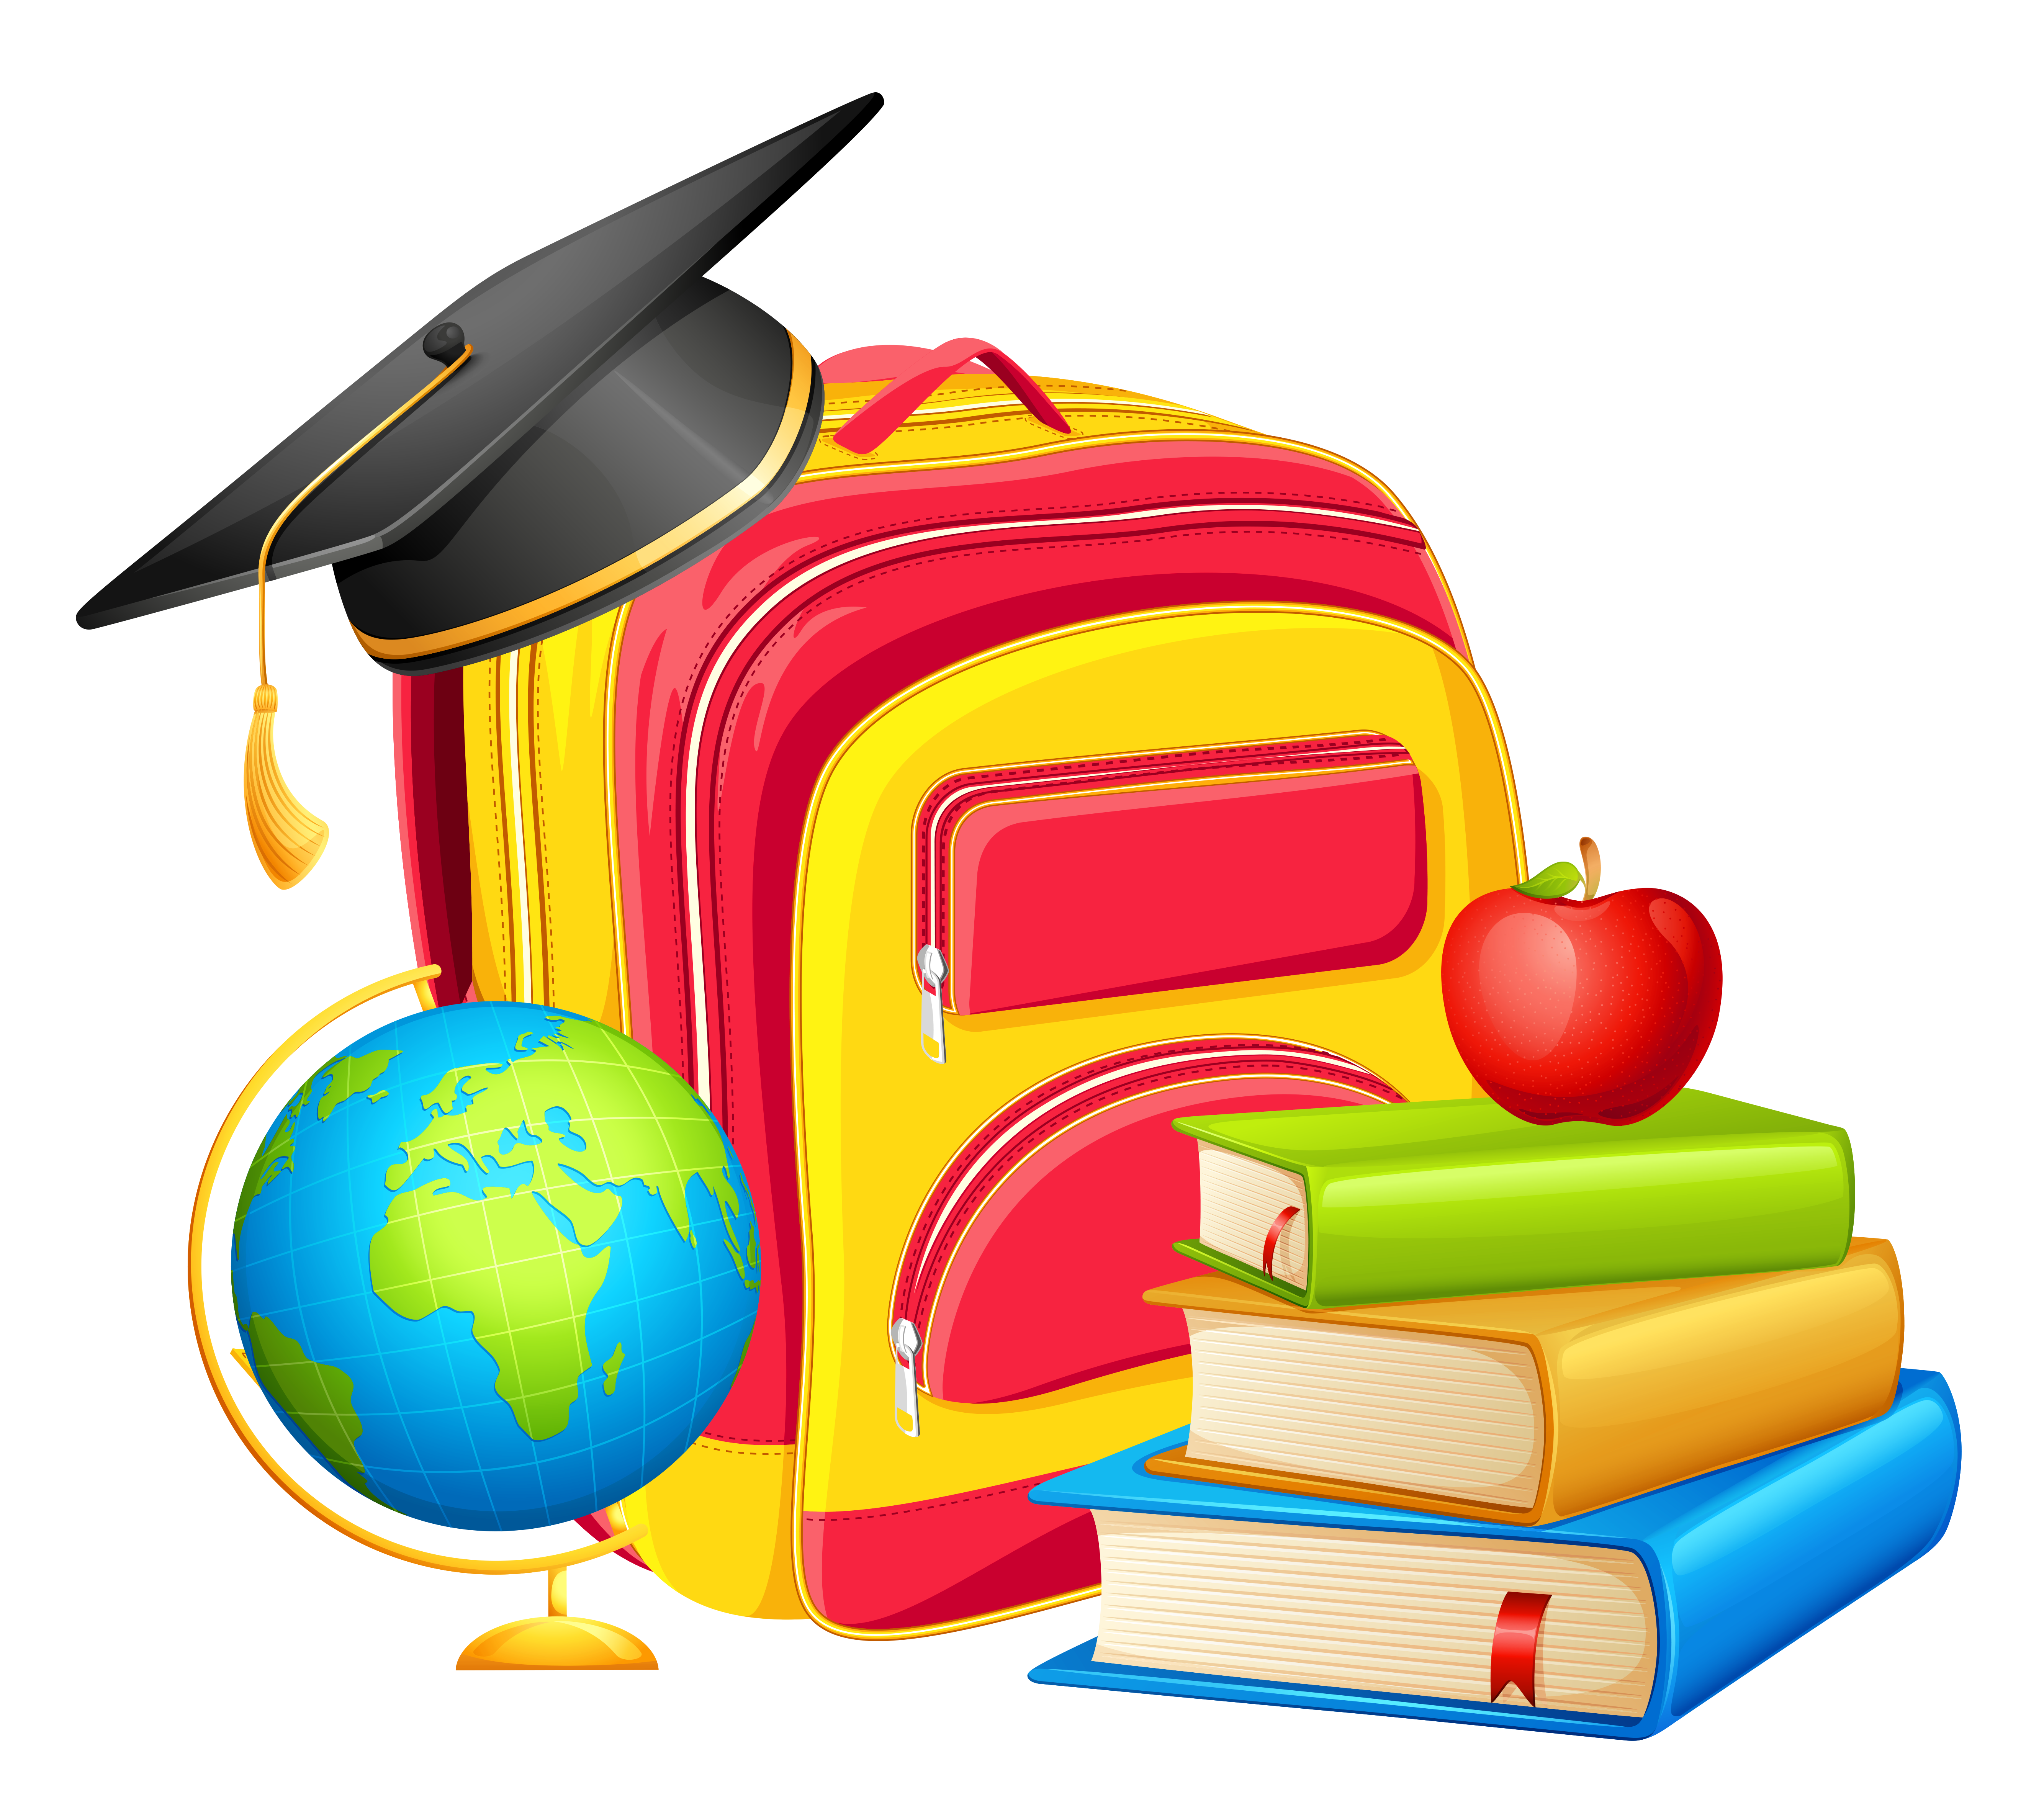 5337x4690 School Backpack And Decorations Png Clipartu200b Gallery